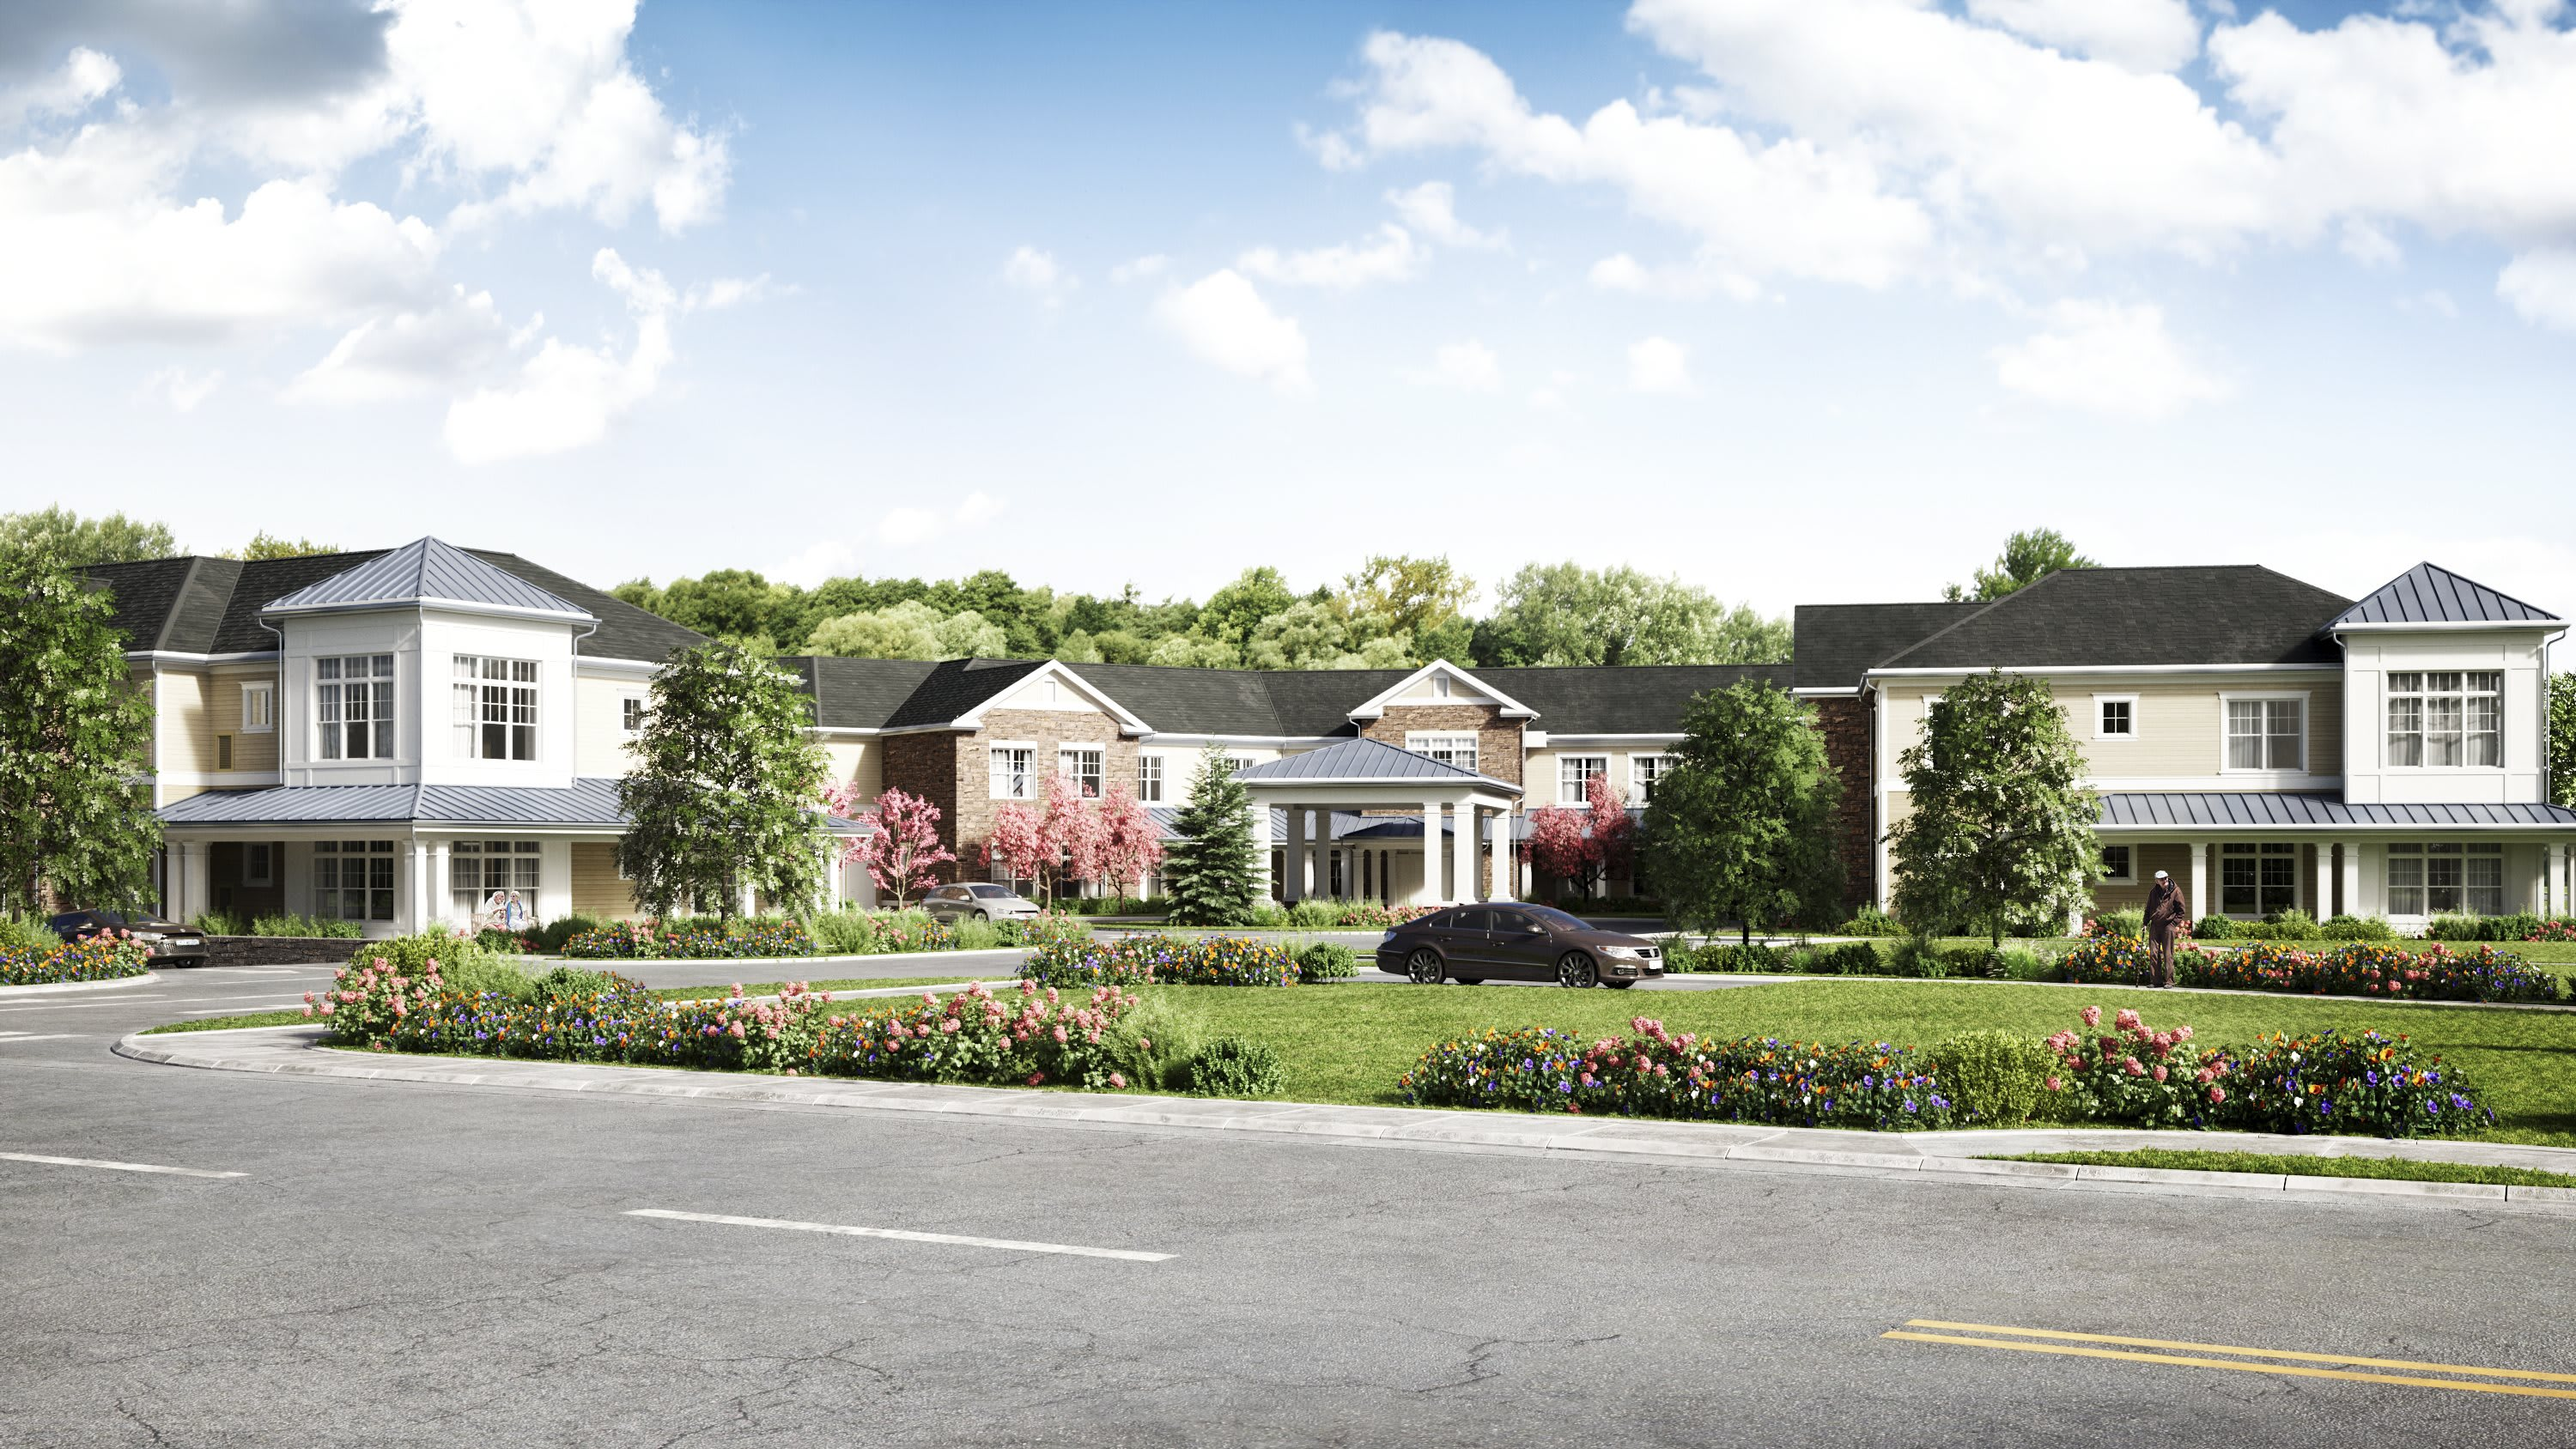 Photo 1 of Sunrise of Franklin Lakes (Opening Fall 2021)